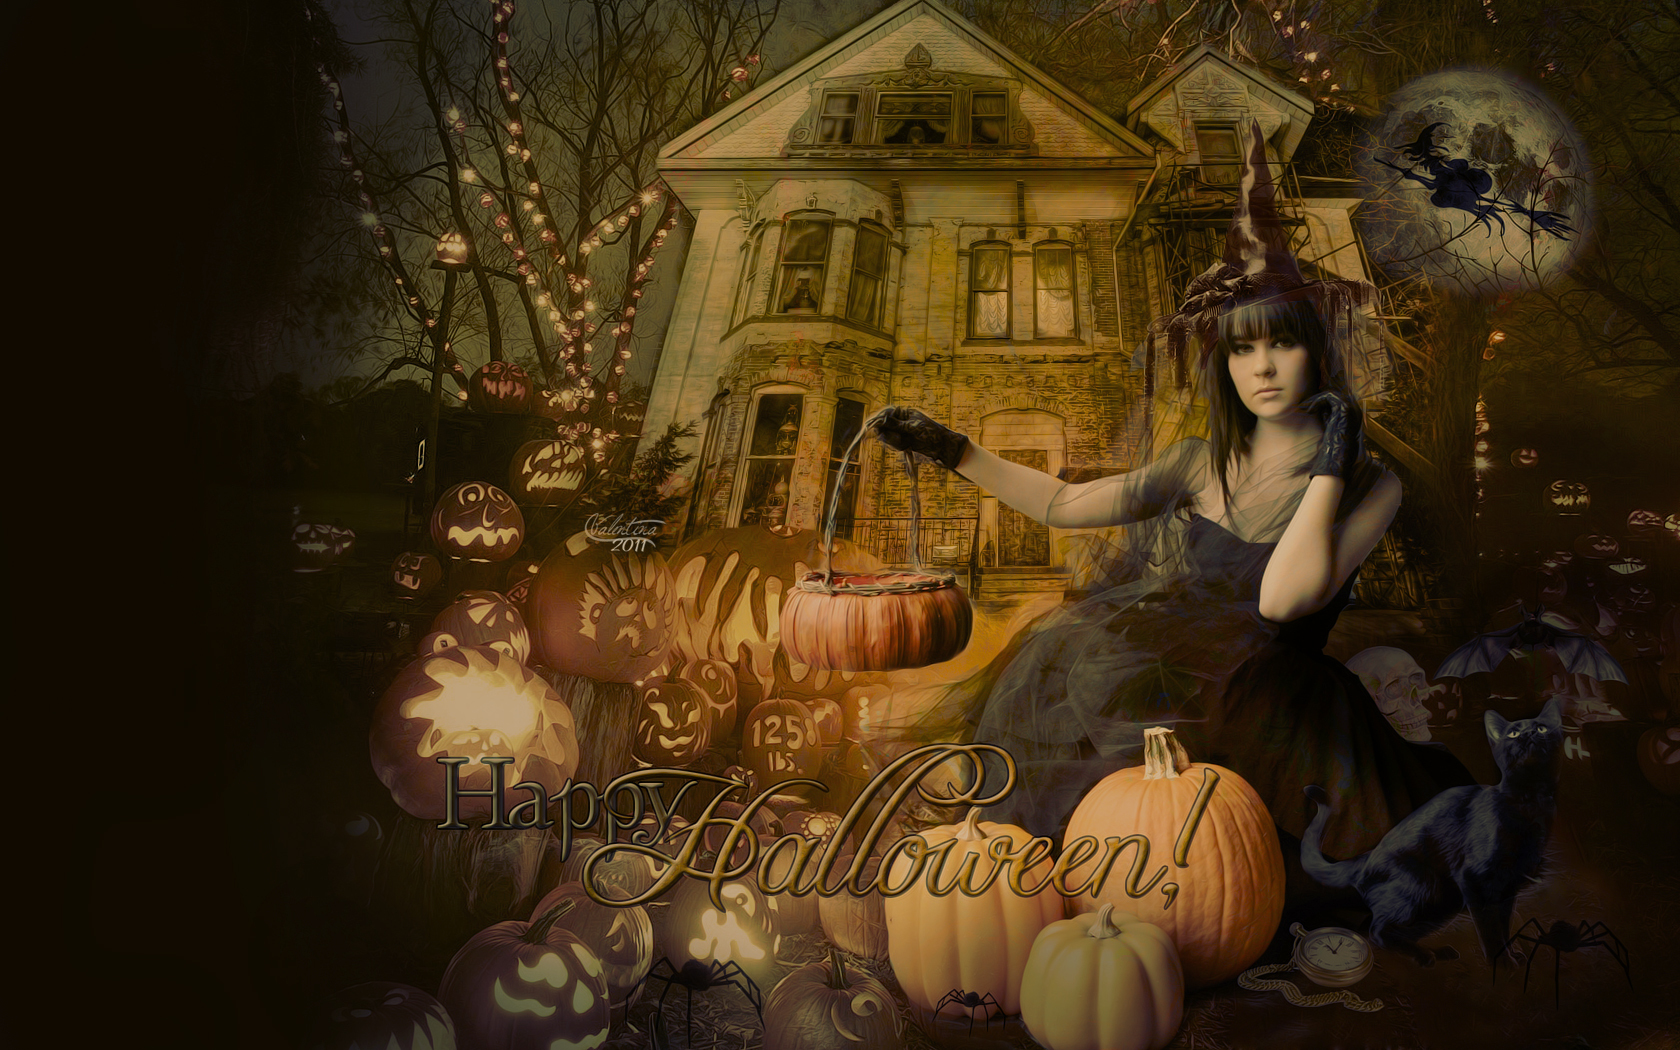 Happy Halloween! - Halloween Wallpaper (26135629) - Fanpop